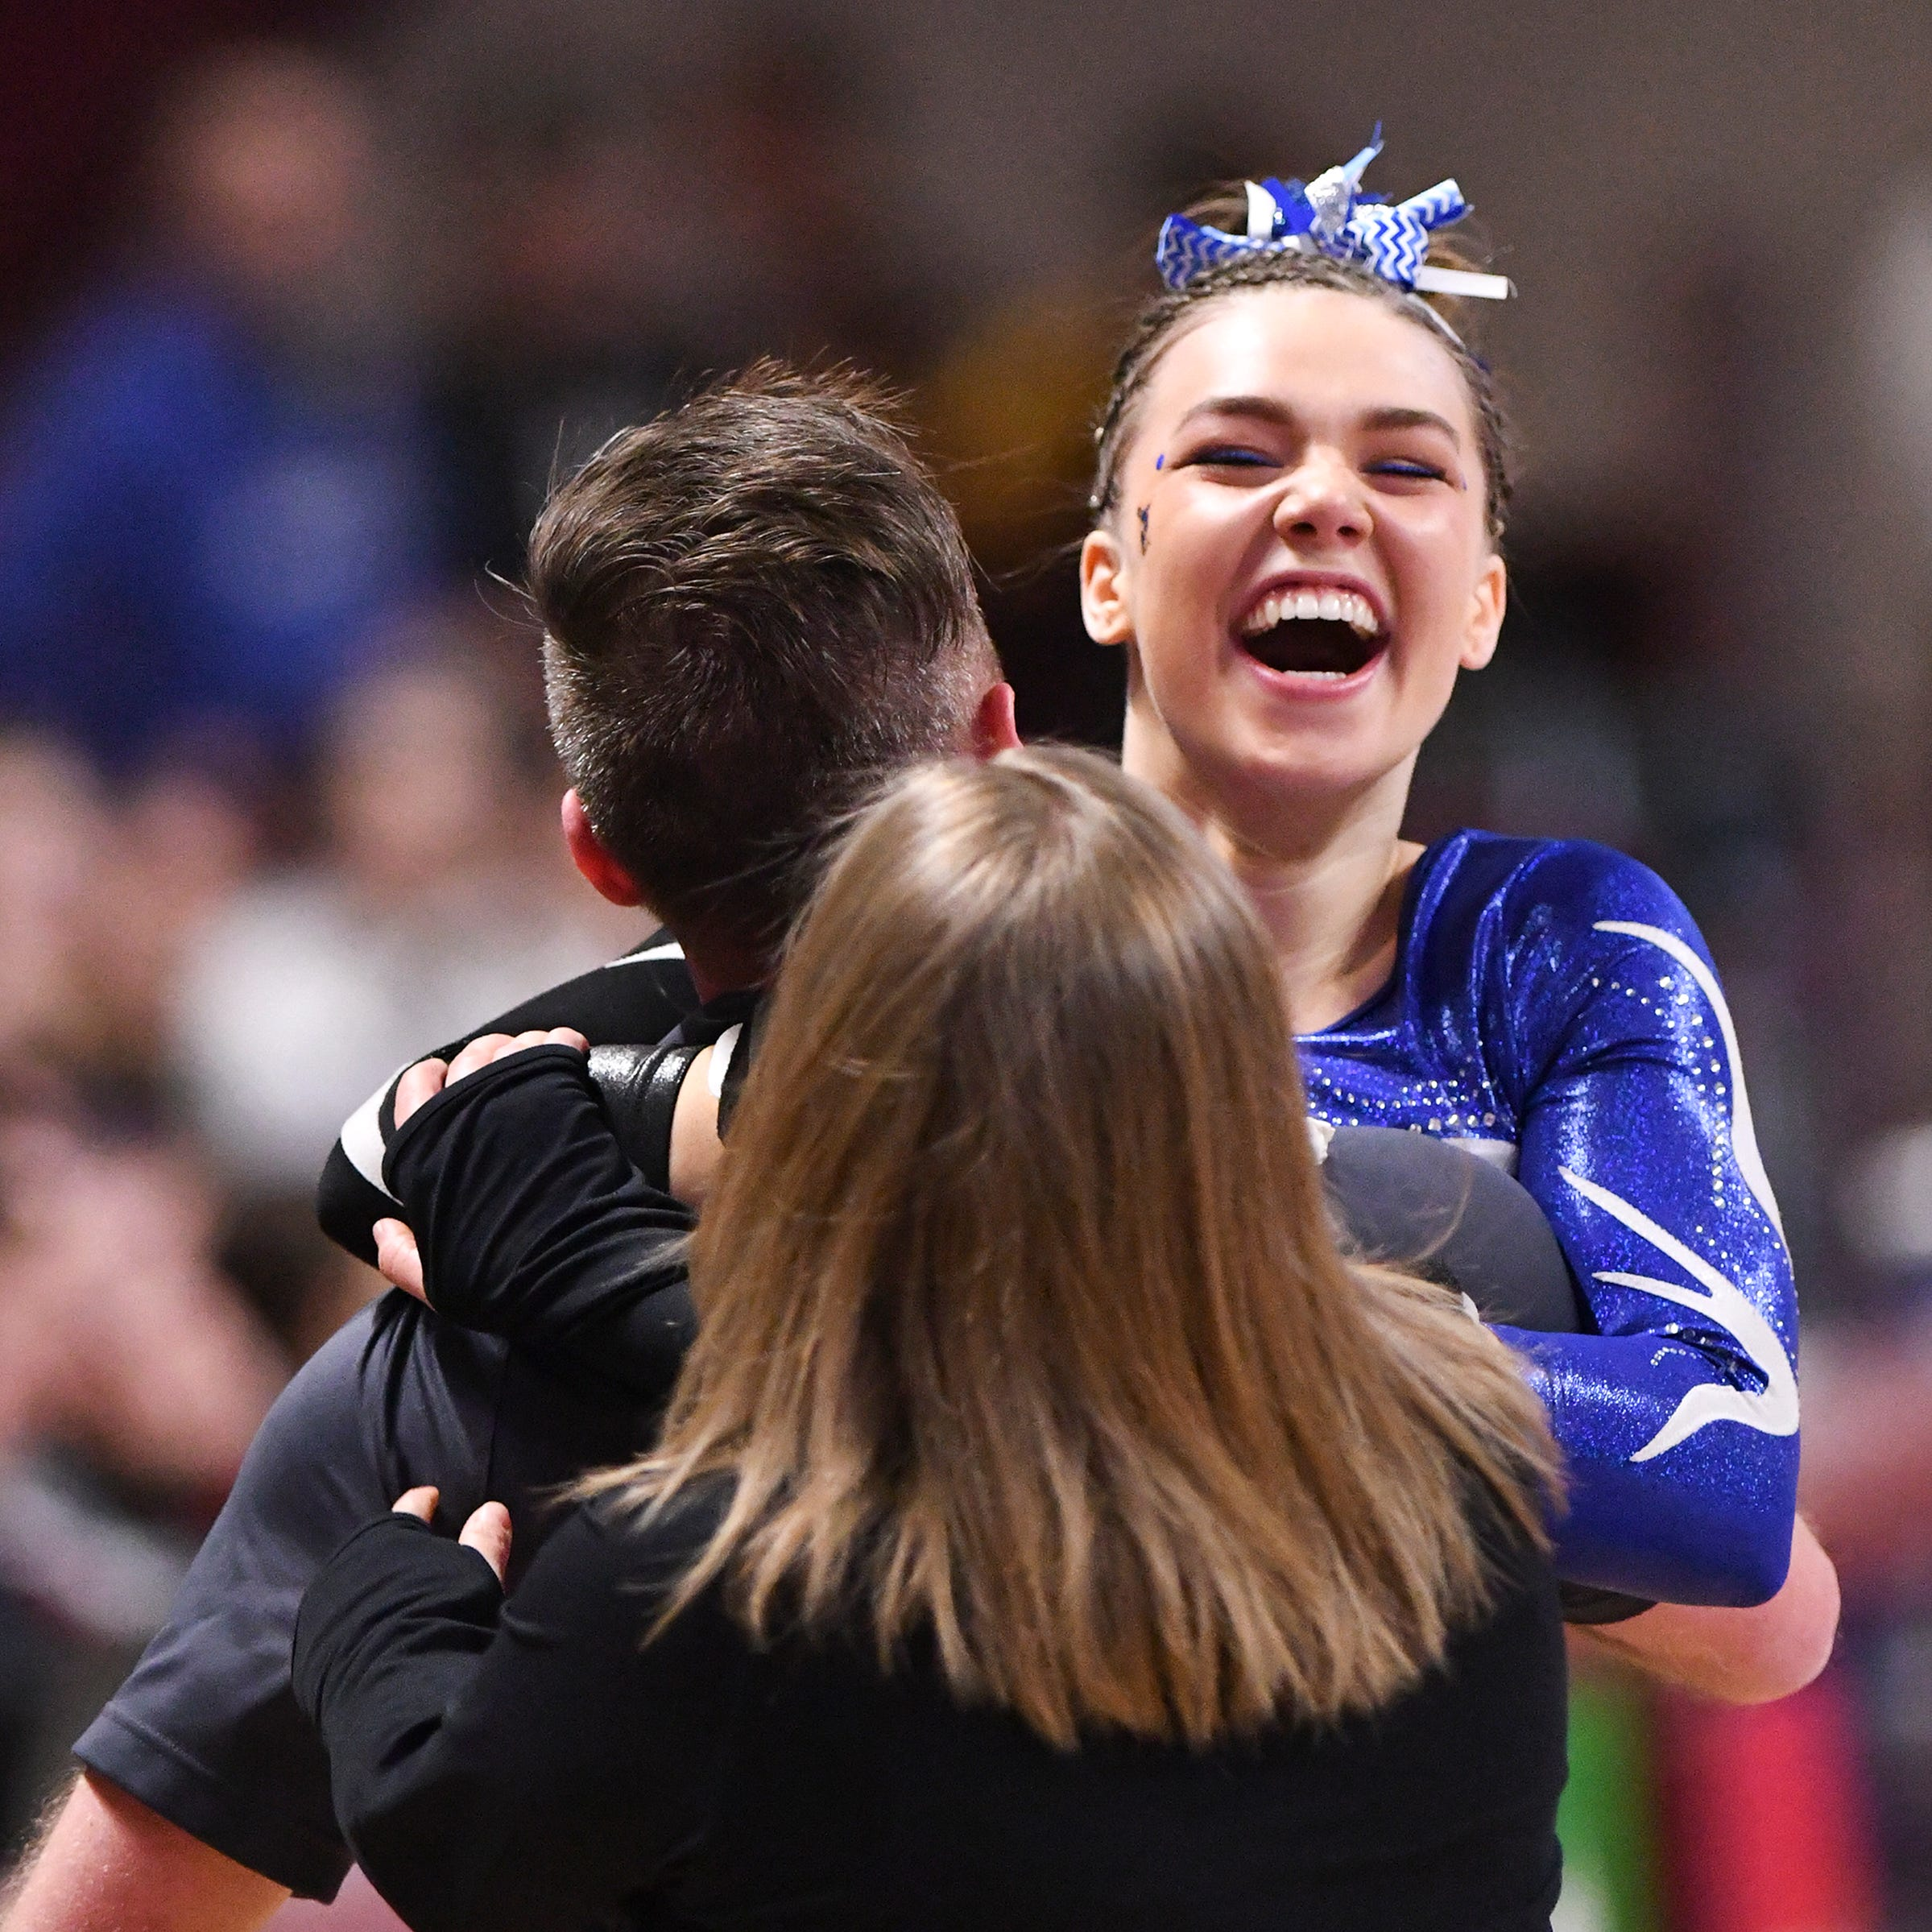 Father's ALS fight motivates Weber, who repeats as Times All-Area Gymnast of the Year